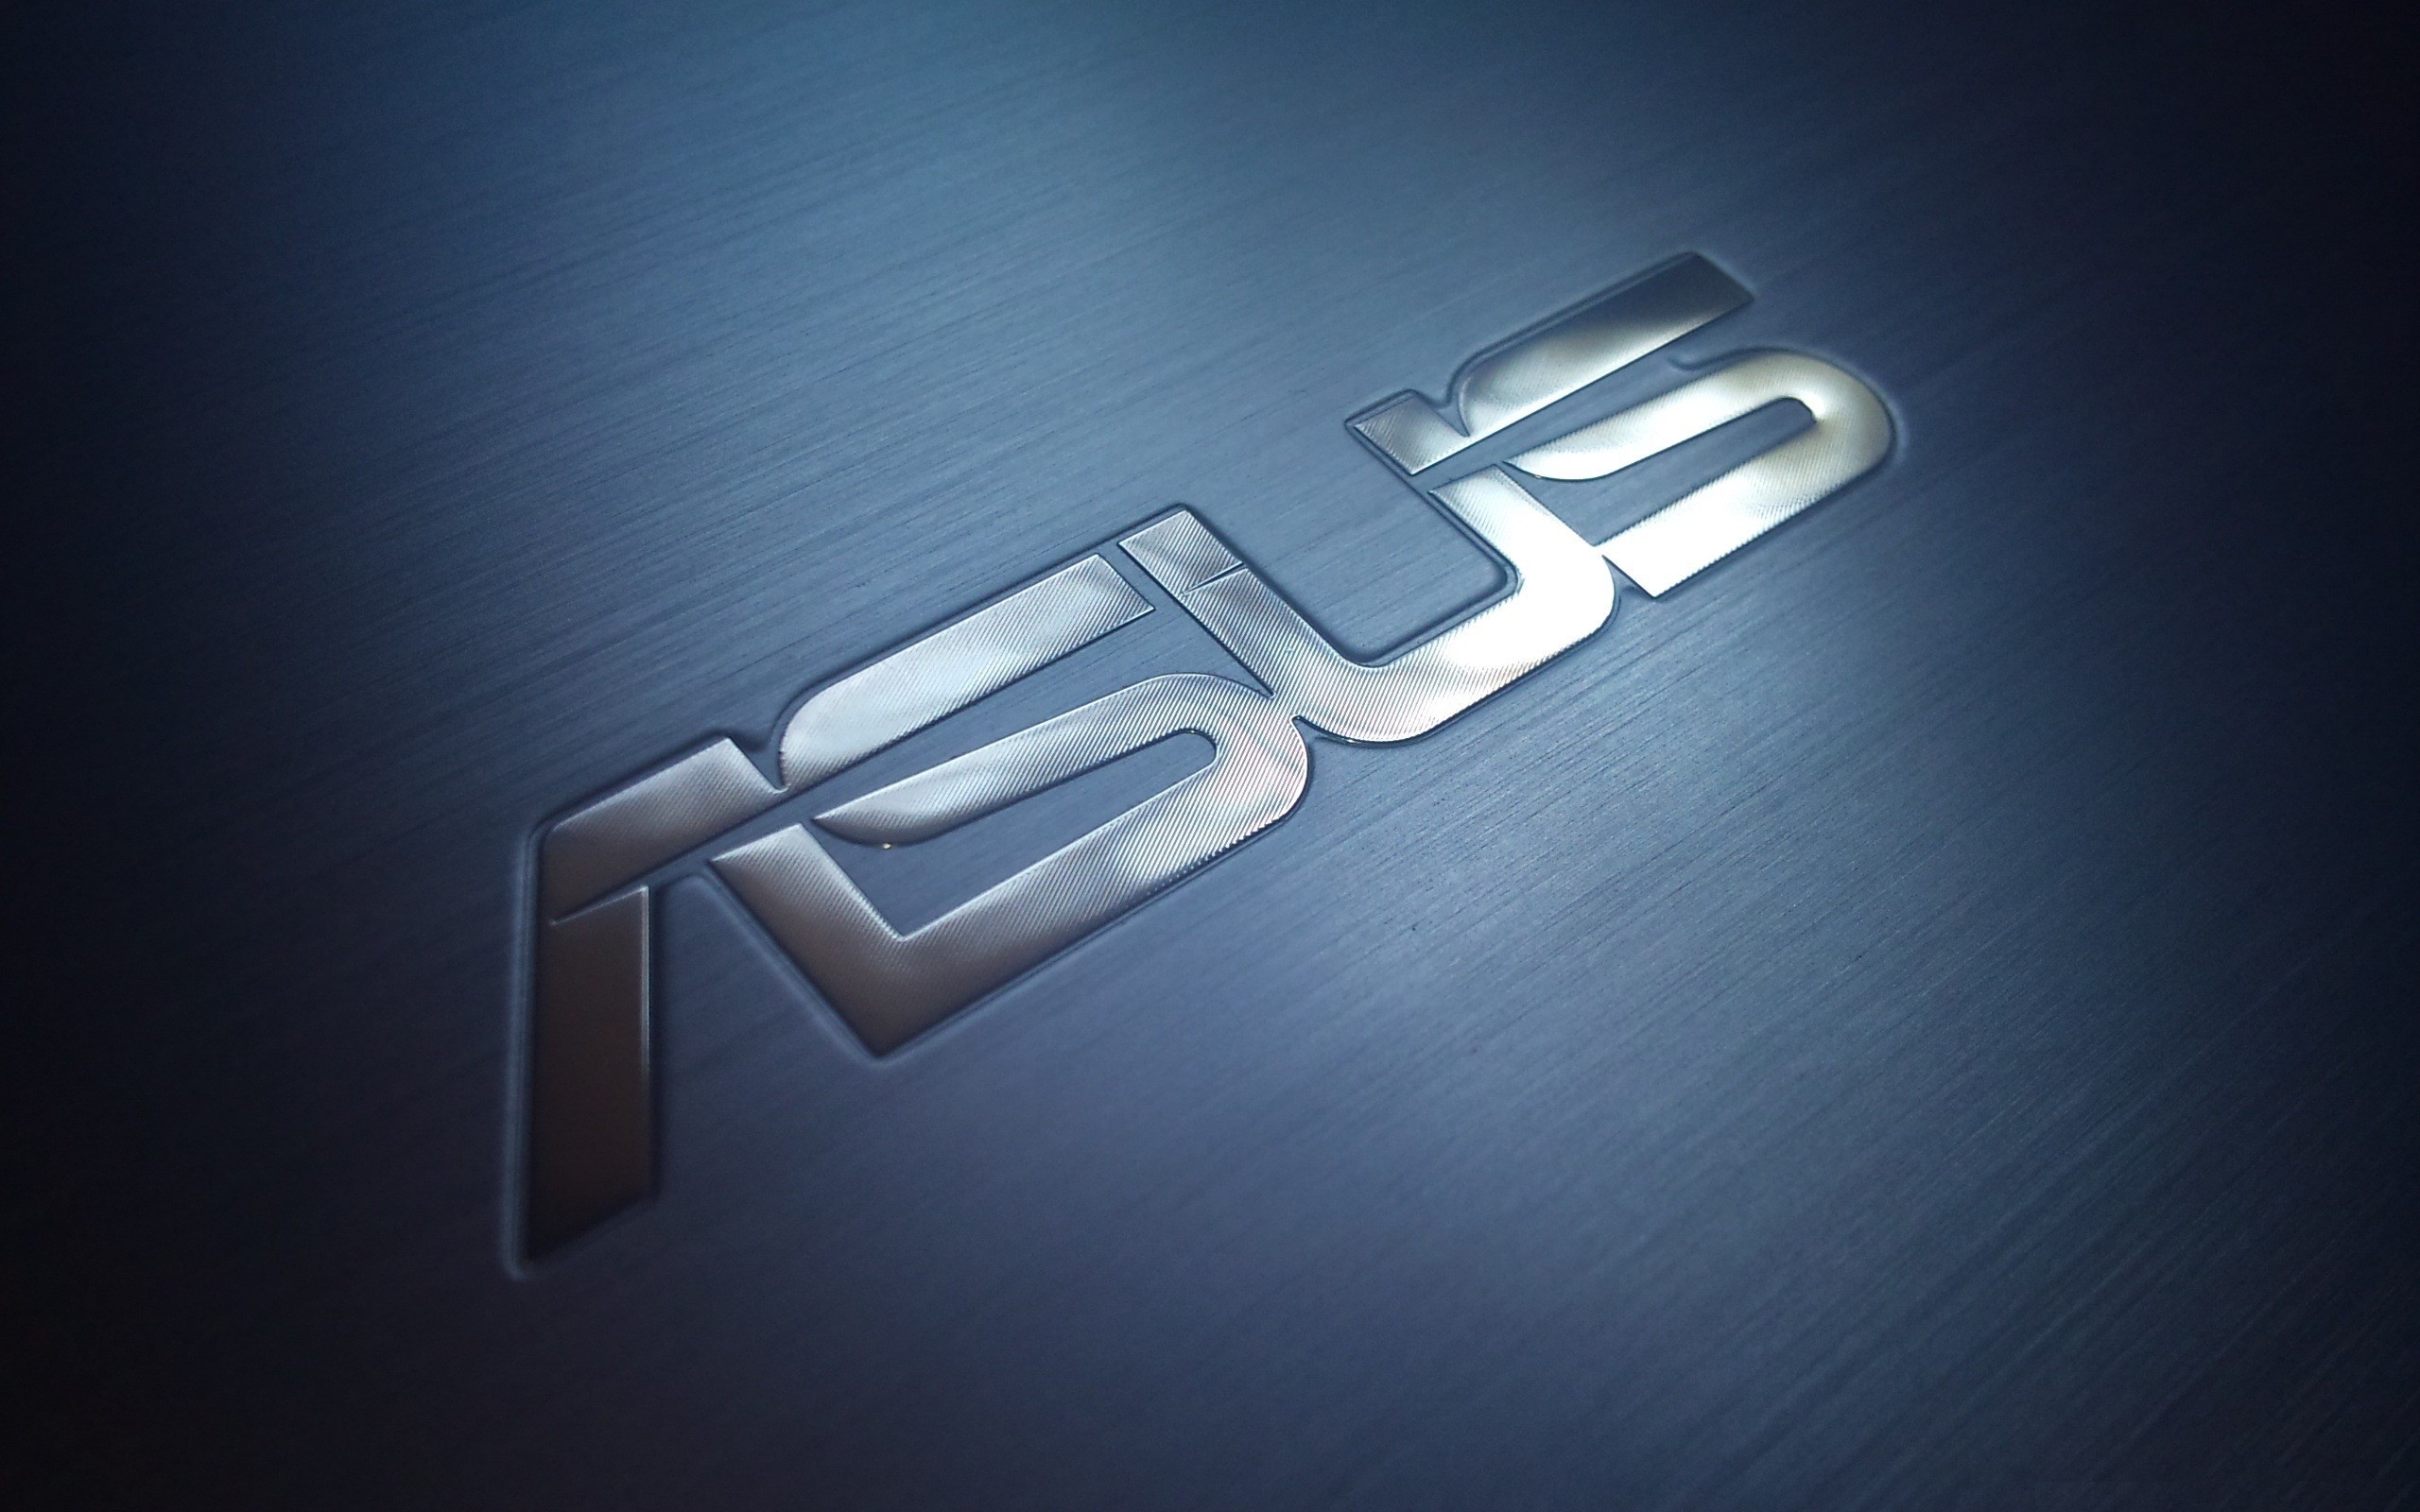 1360x768 asus laptop hd hd 4k wallpapers, images, backgrounds